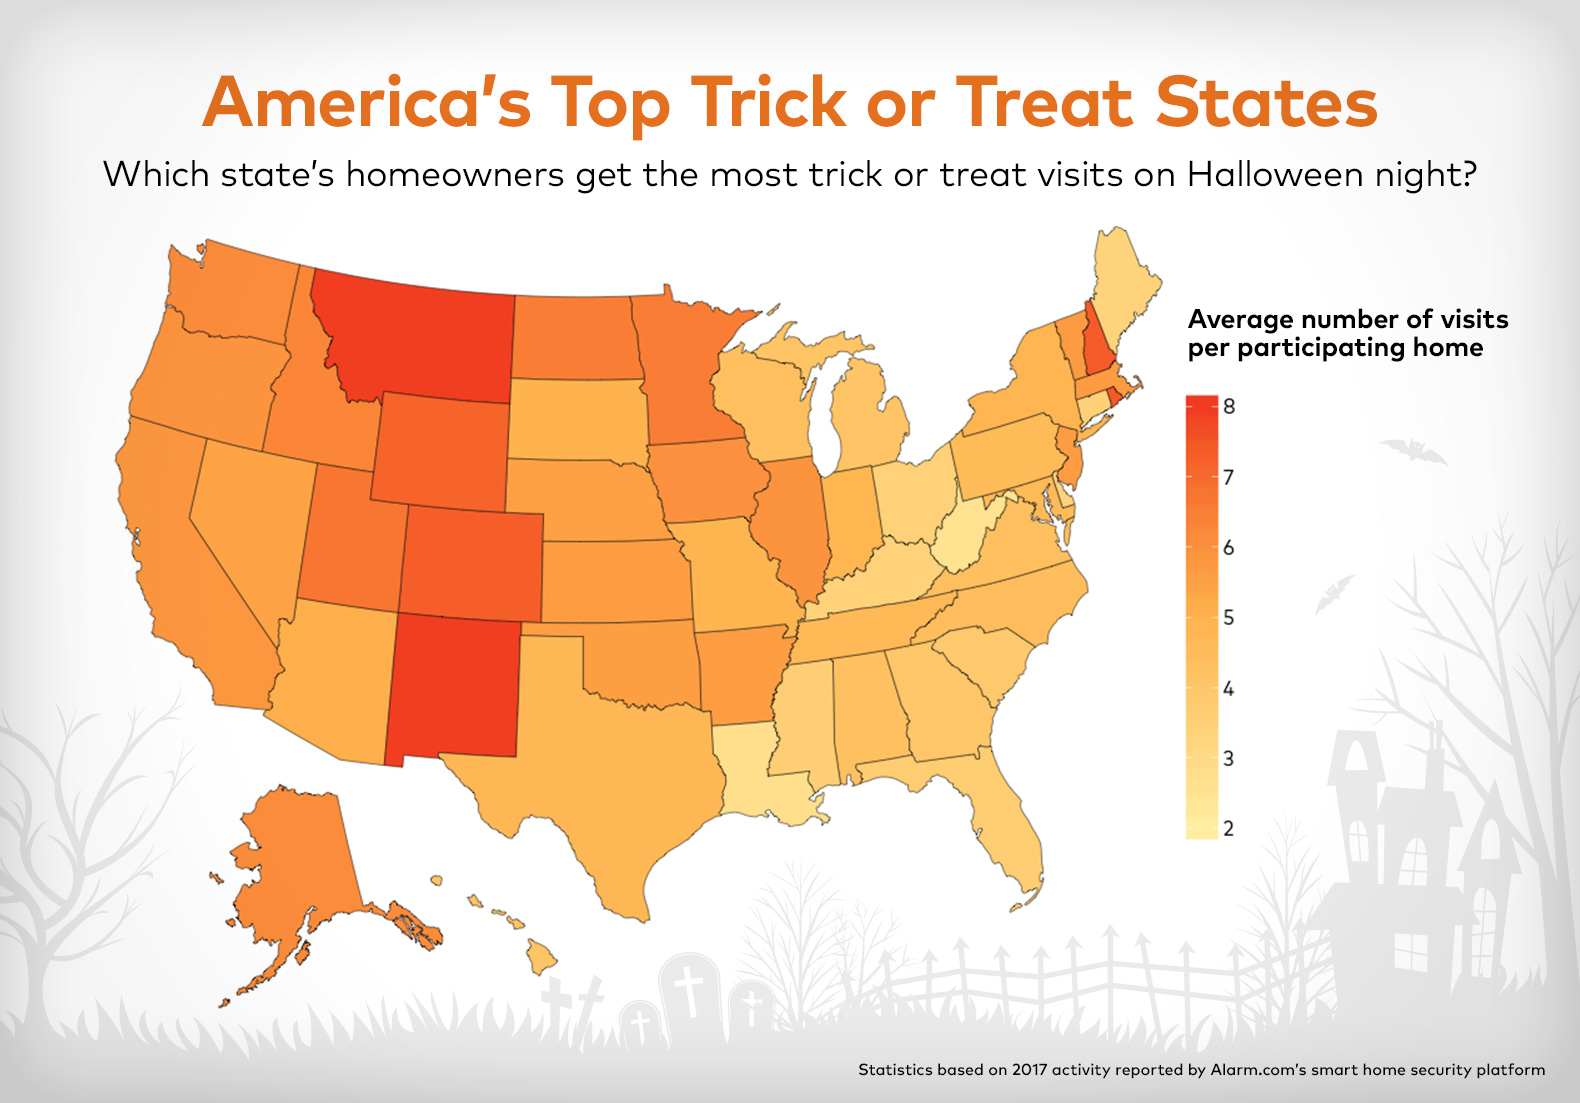 Top Halloween States Alarm.com